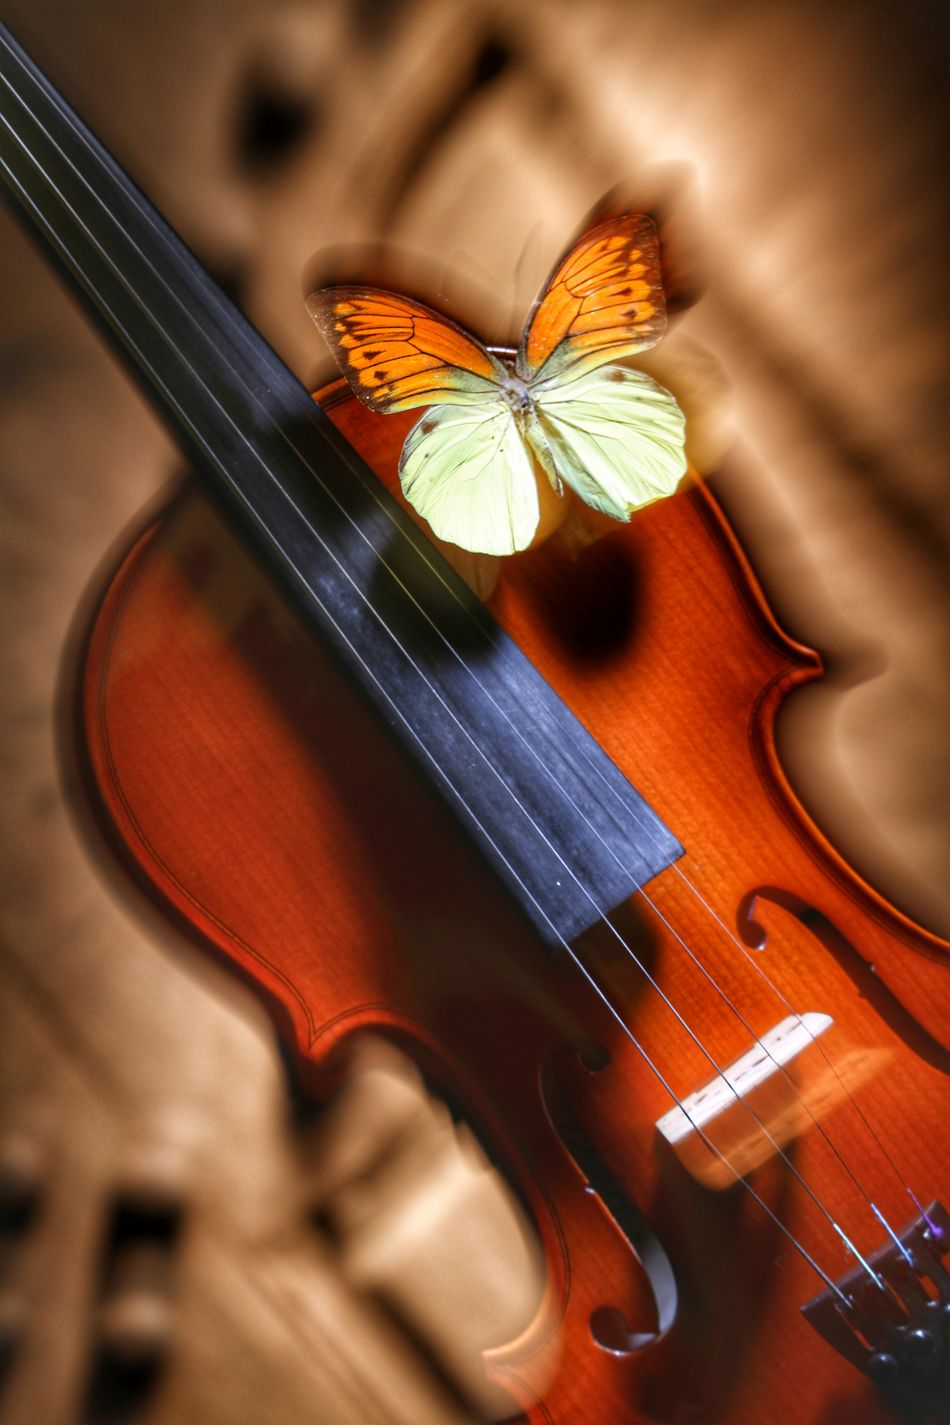 Apluskphotoworks Music Musical Instrument Arts Culture And Entertainment Musical Instrument String Classical Music No People Close-up Indoors  Animal Themes Day Dslrphotography Eos5dmarkiv Highkeyphotography Portrait Studiophotography